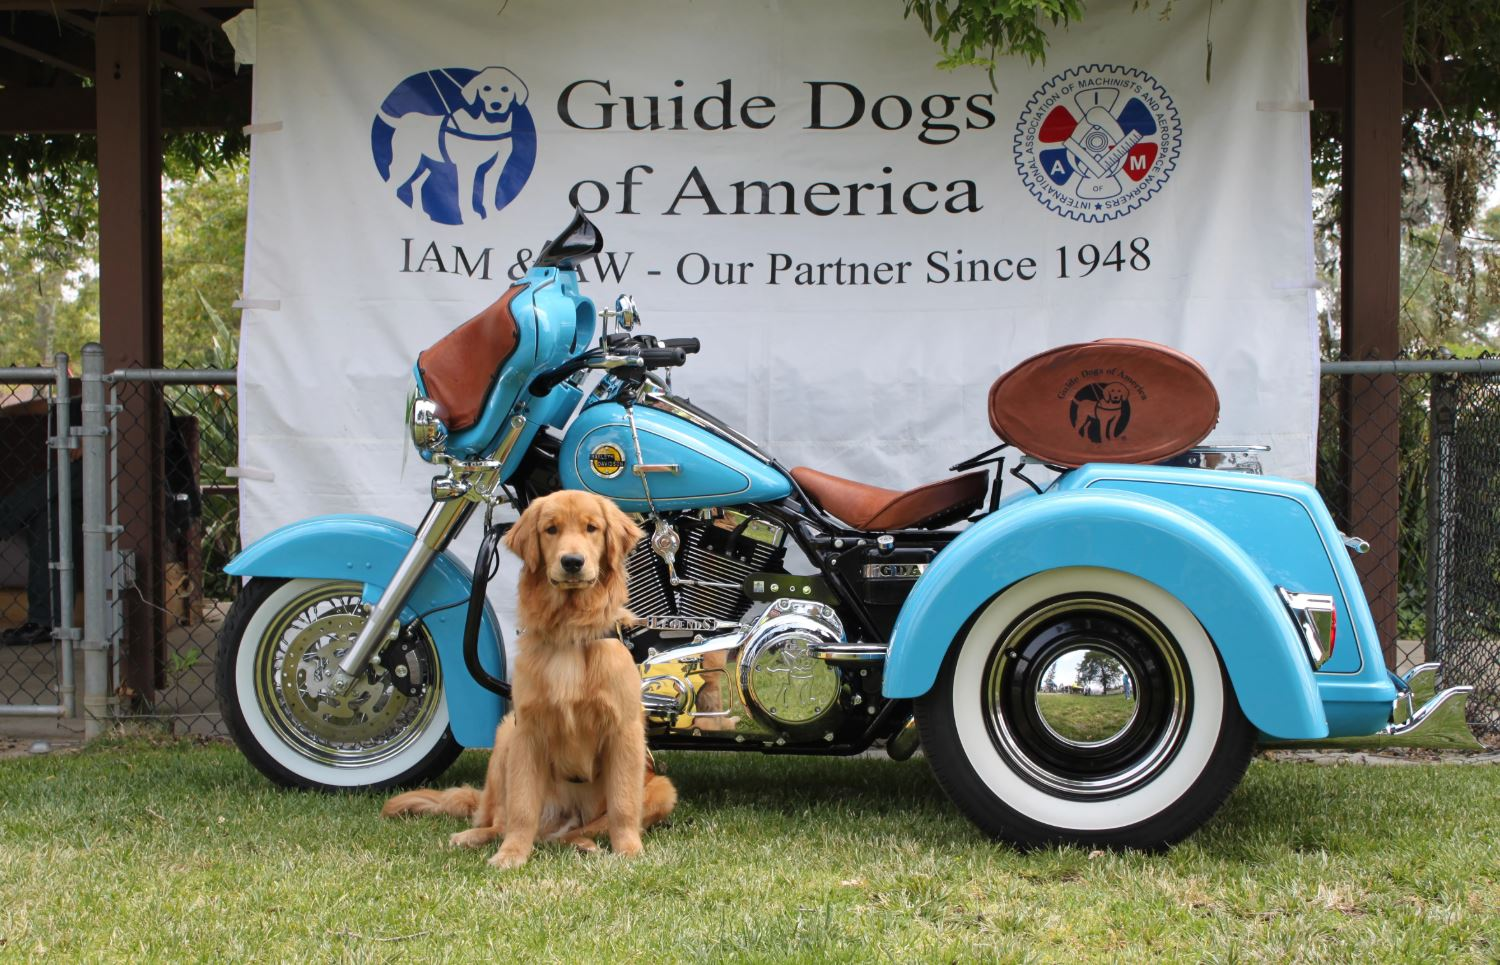 Join the Kourpias K-9 Classic, a 1,700 Mile Motorcycle Ride for GDA June 6-12